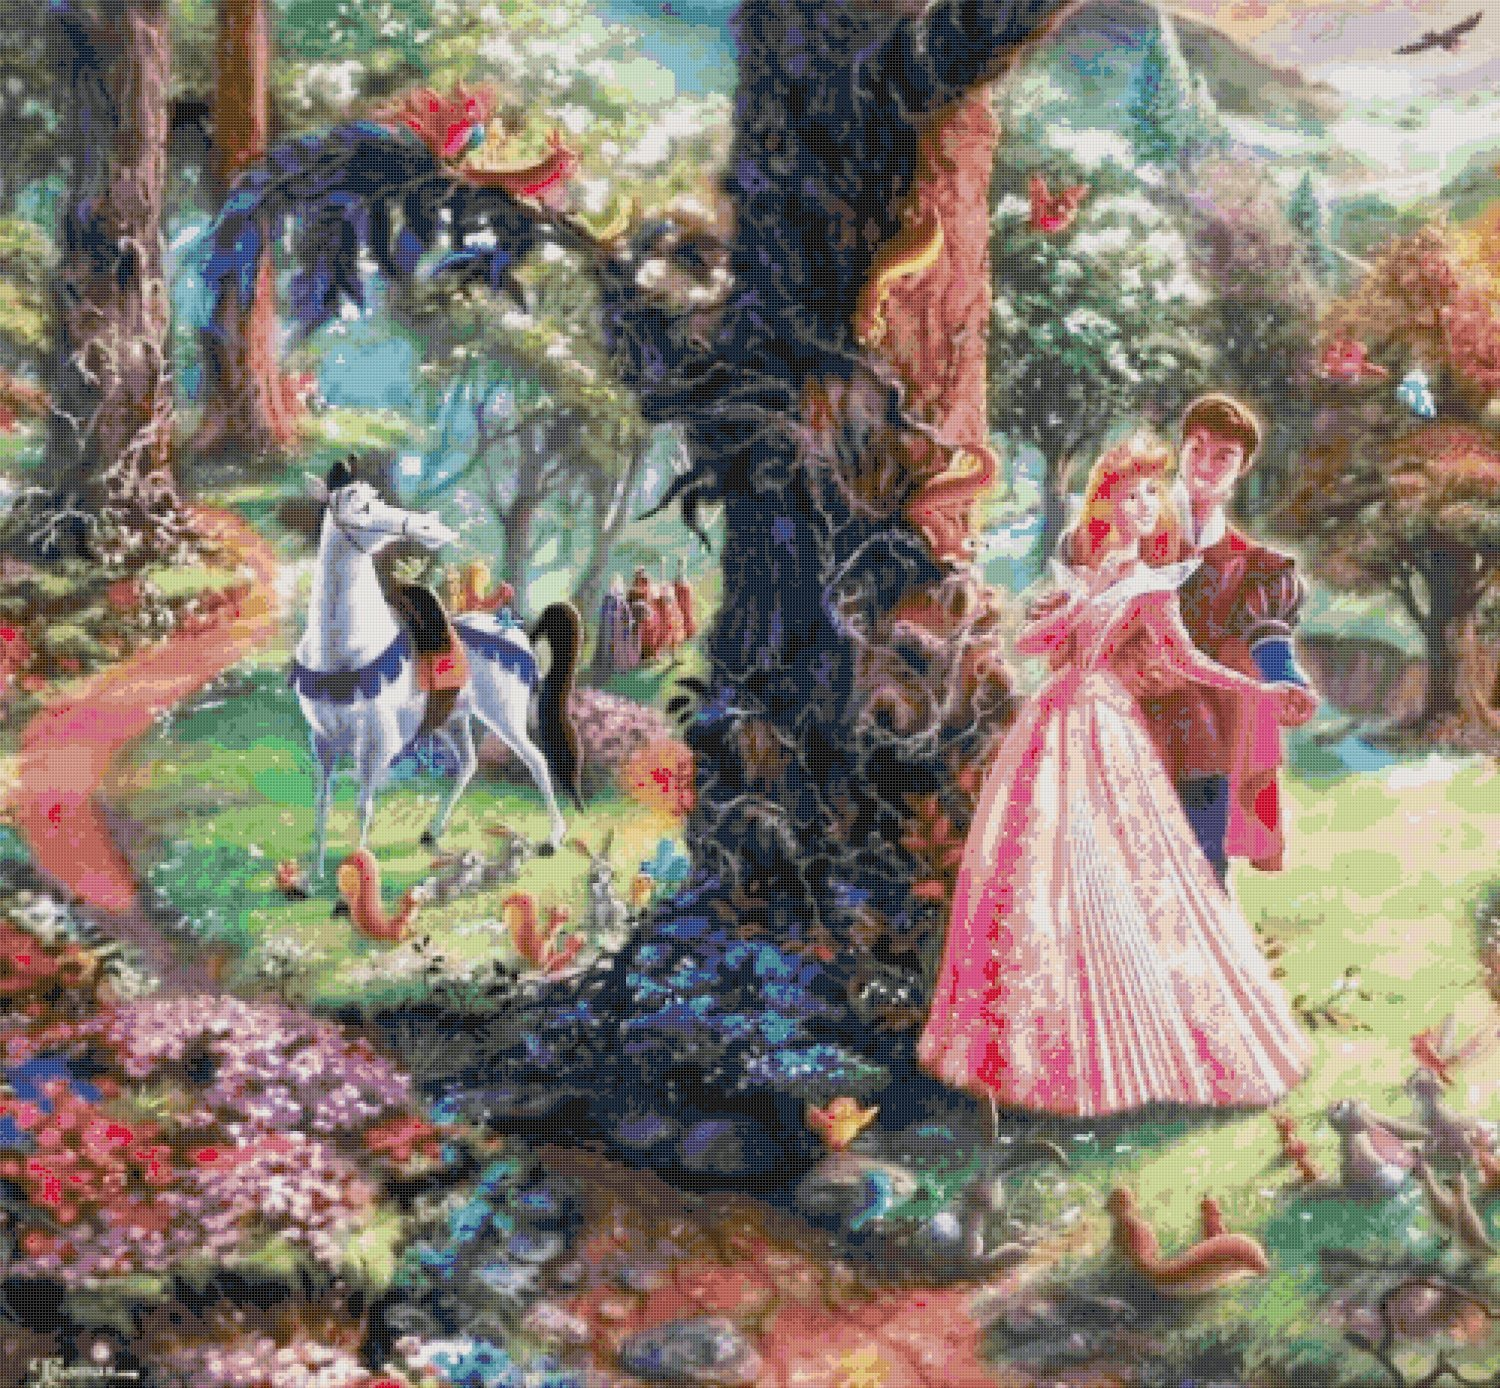 "Sleeping Beauty cross stitch pattern Kinkade Cross Stitch pattern - 35.43"" x 32.79"" - E1624"